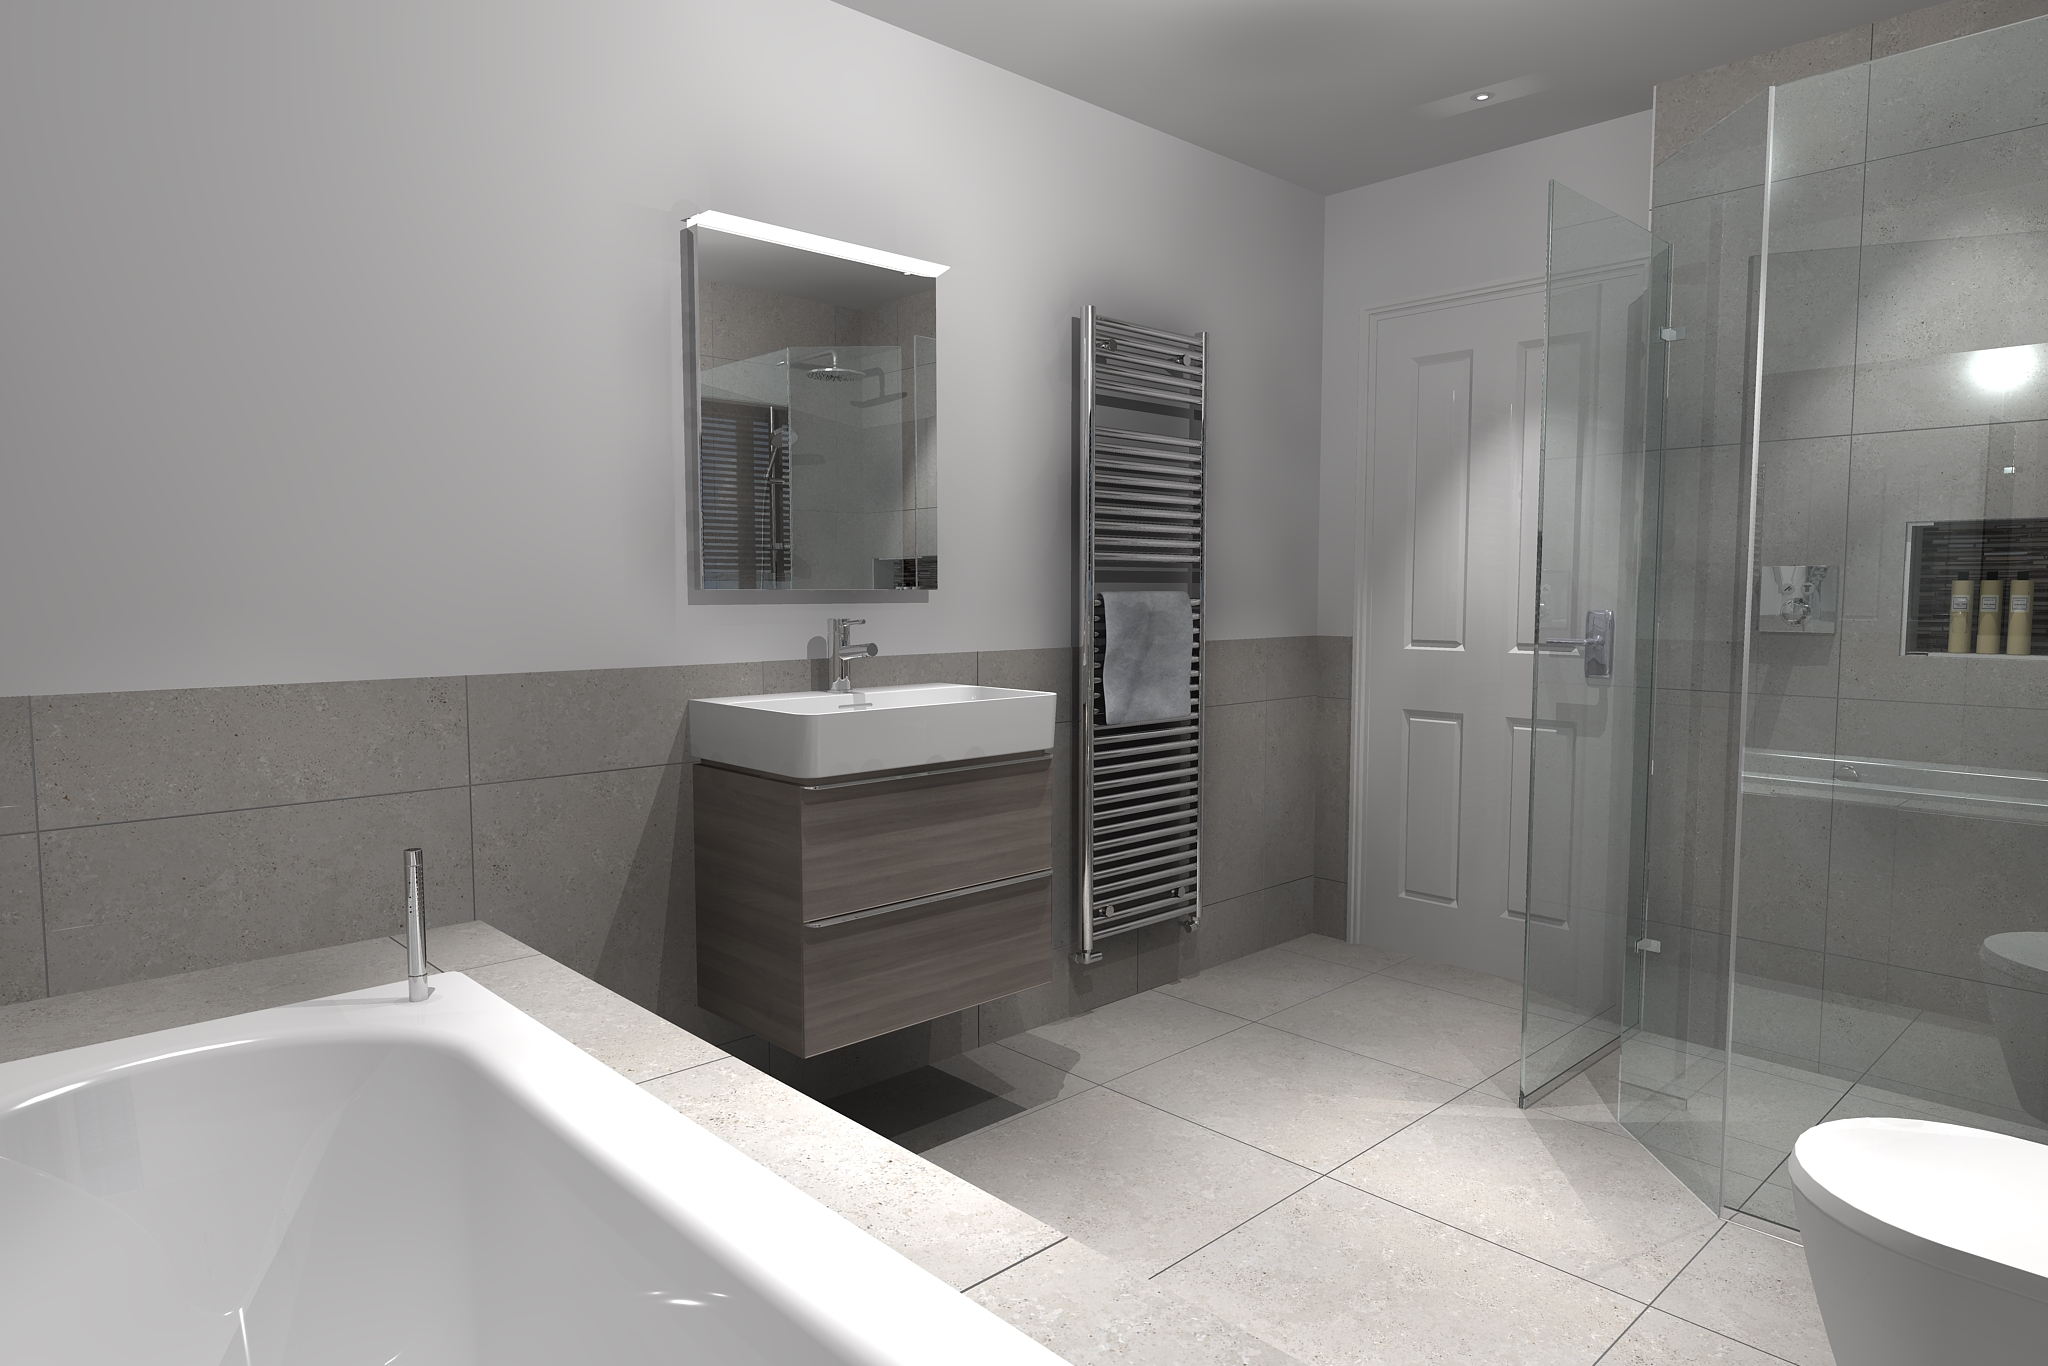 https://sykesbathrooms.com/wp-content/uploads/2015/11/KANE-MAIN-BATHROOM-4.jpg